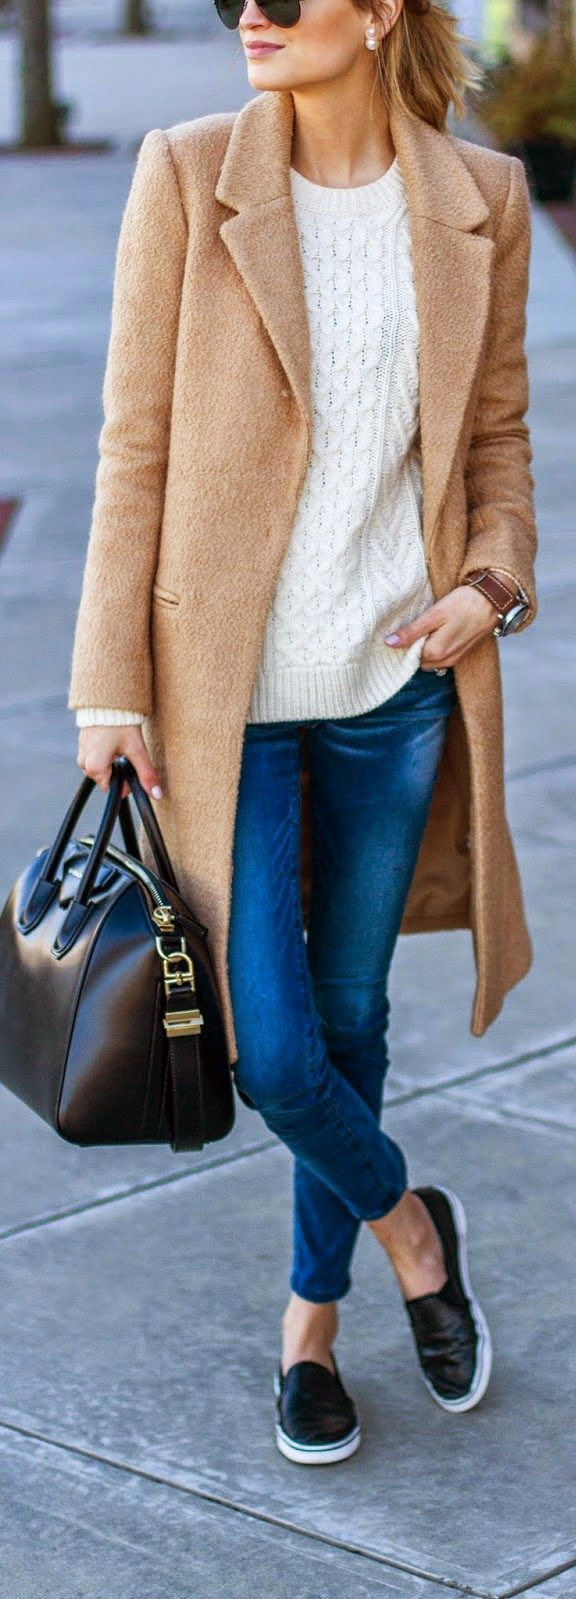 SPORTY CHIC - Coat in Brushed Fabric + Pilcro Serif Sateen Jeans + Classic Cable Knit Sweater + Steve Madden Sneaker / Little Blonde Book